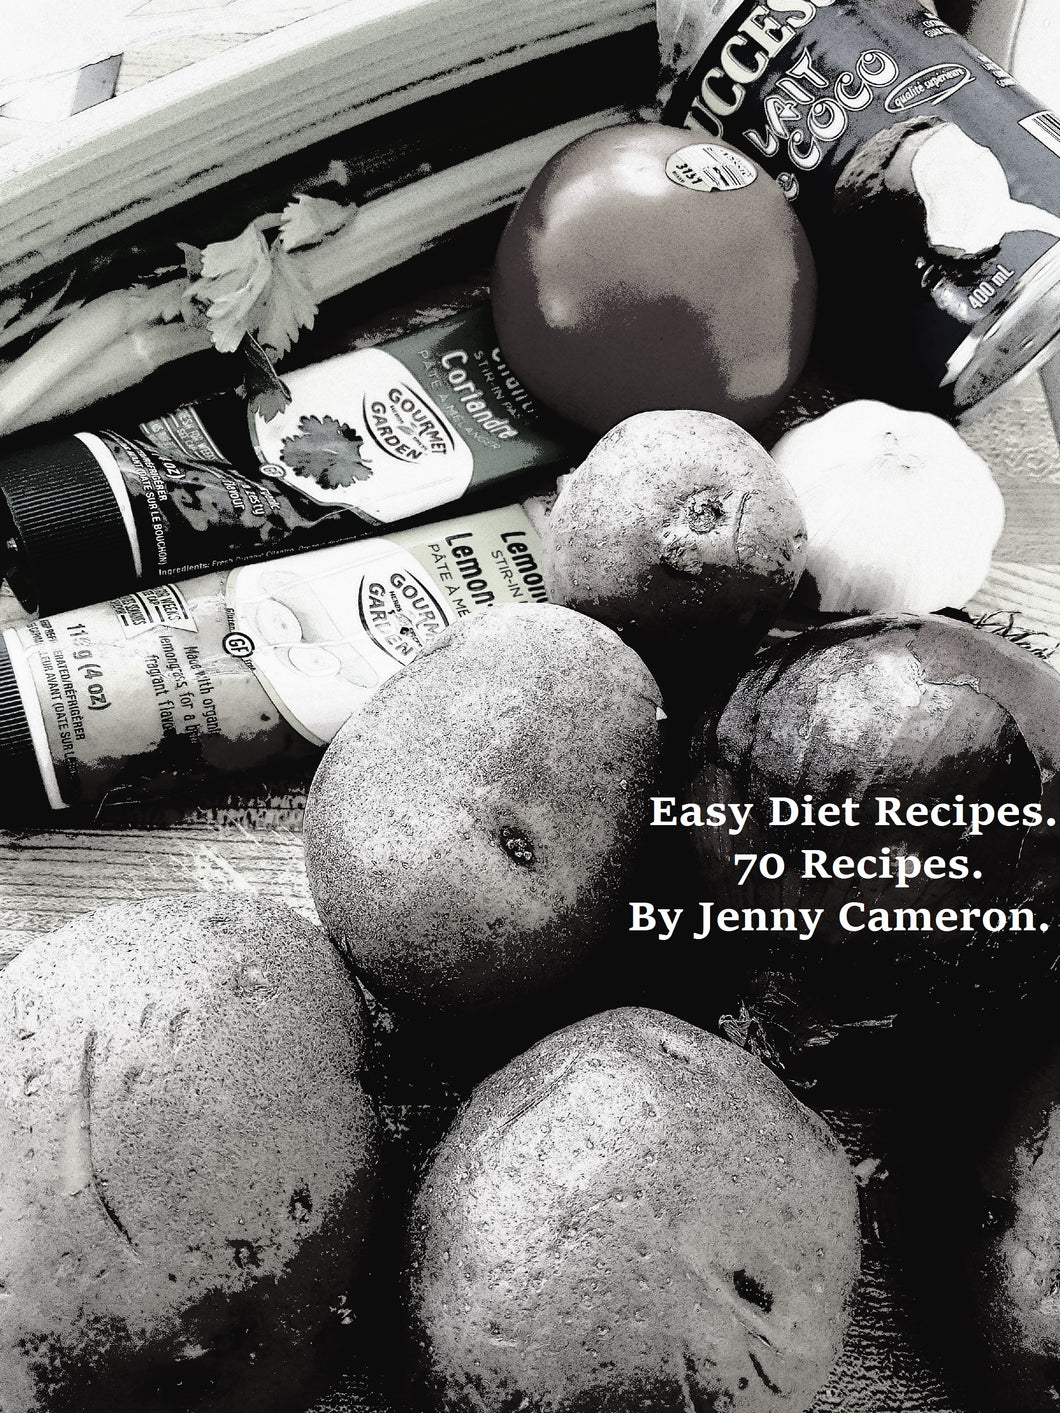 Easy Diet Recipes 70 Recipes by Jenny Cameron. Download Ebook.